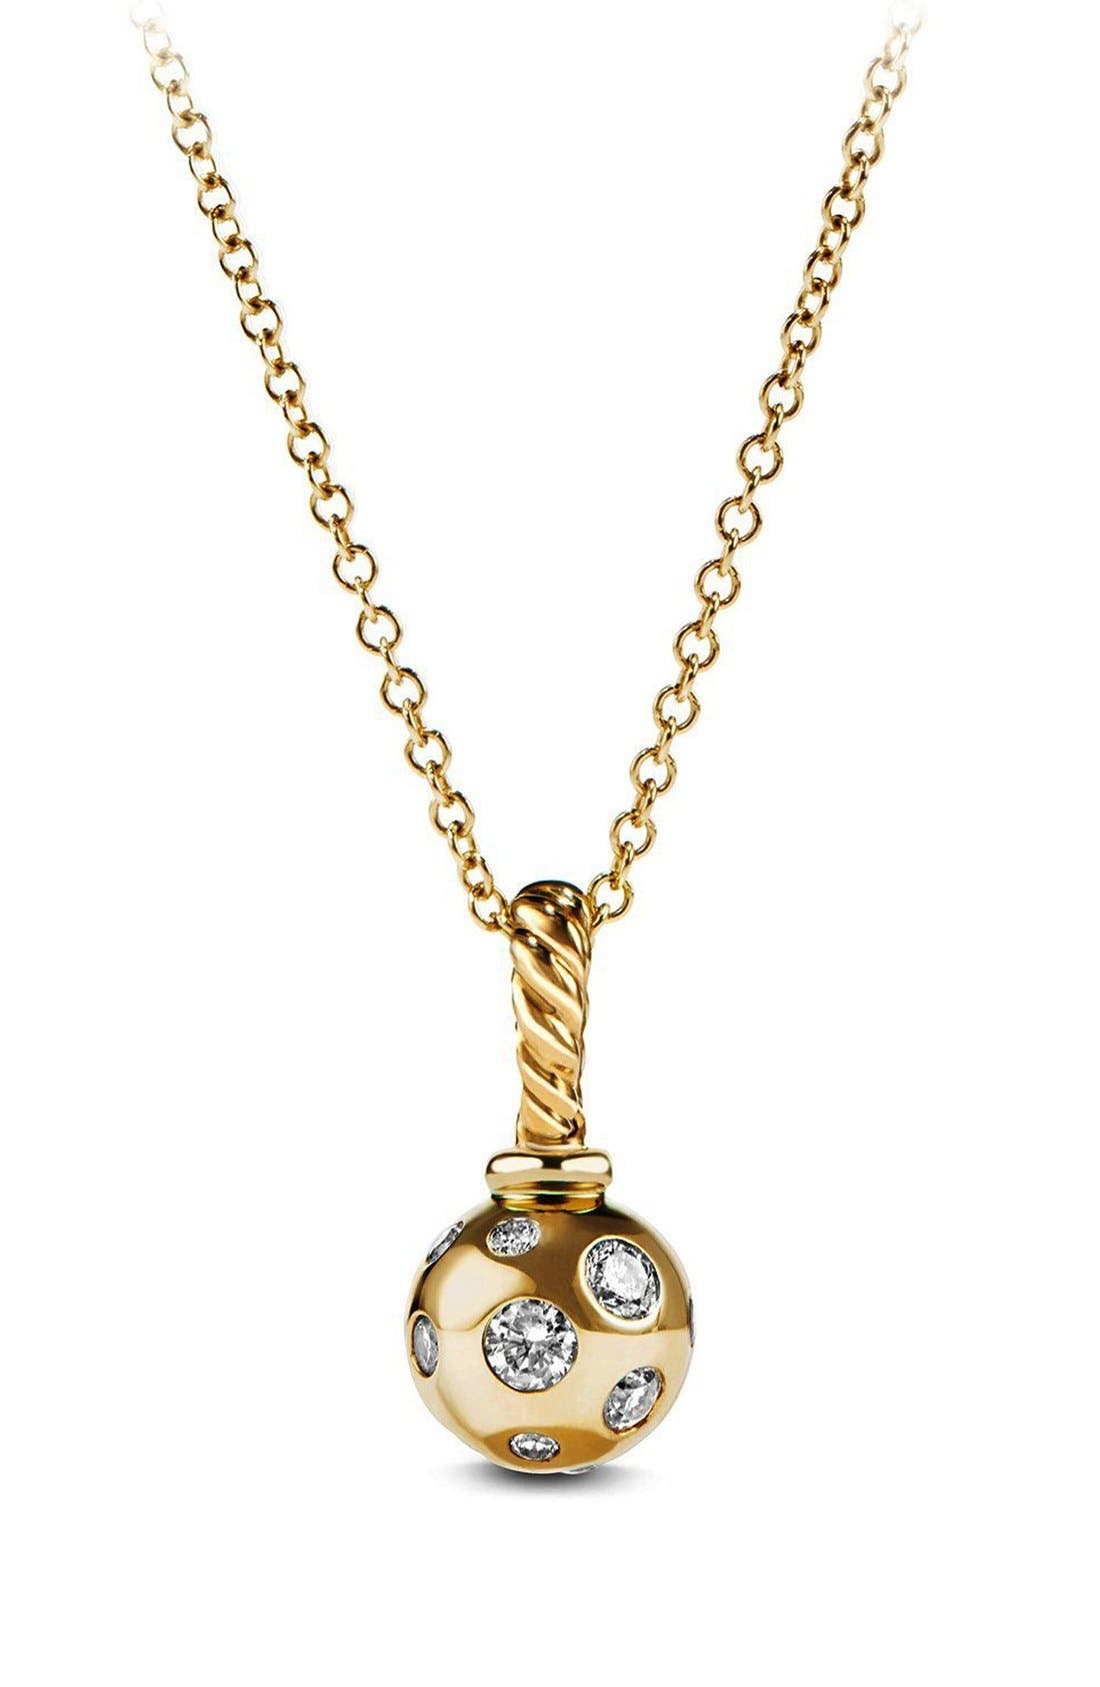 David Yurman Pendant with Diamonds in 18K Gold